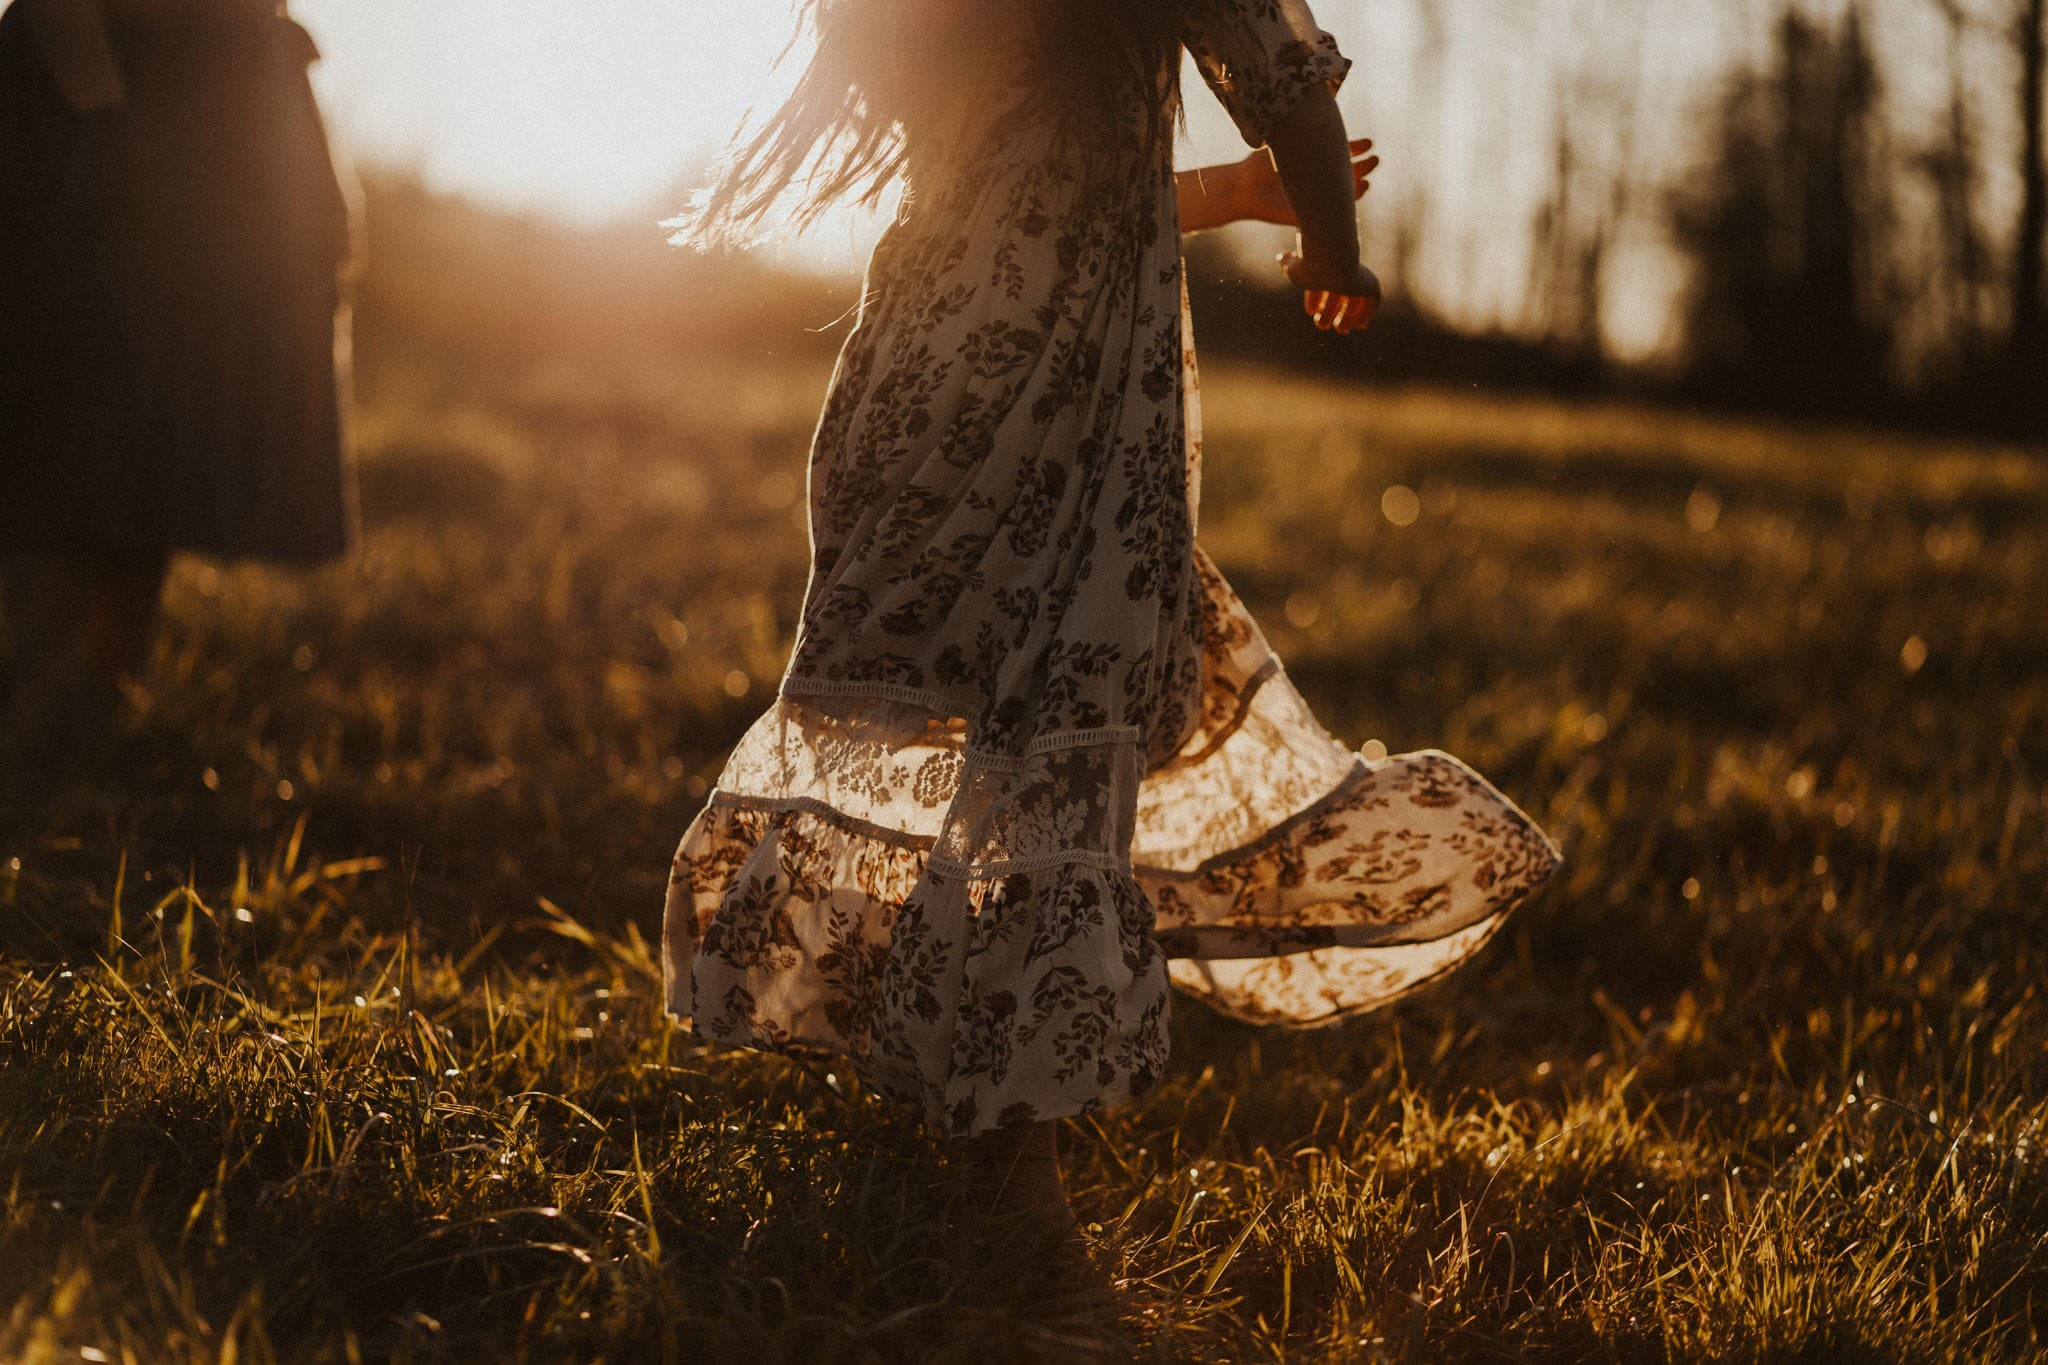 portland oregon - girl spinning in dress with the sun behind her - winter season family photography